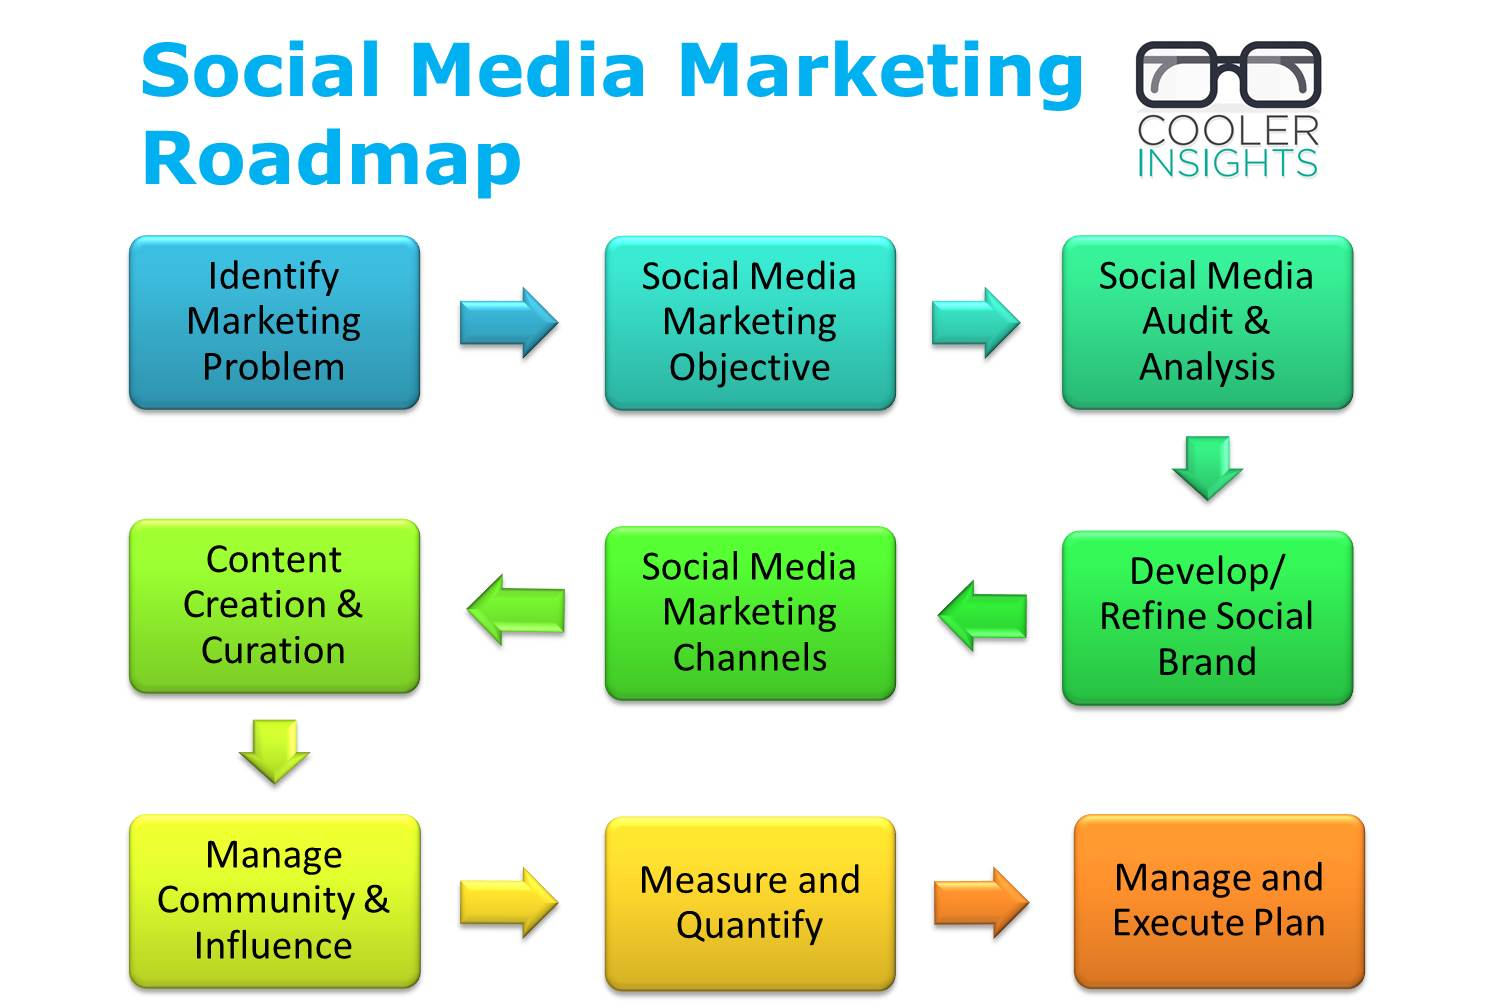 Social Media Marketing: A Simple Roadmap | Cooler Insights